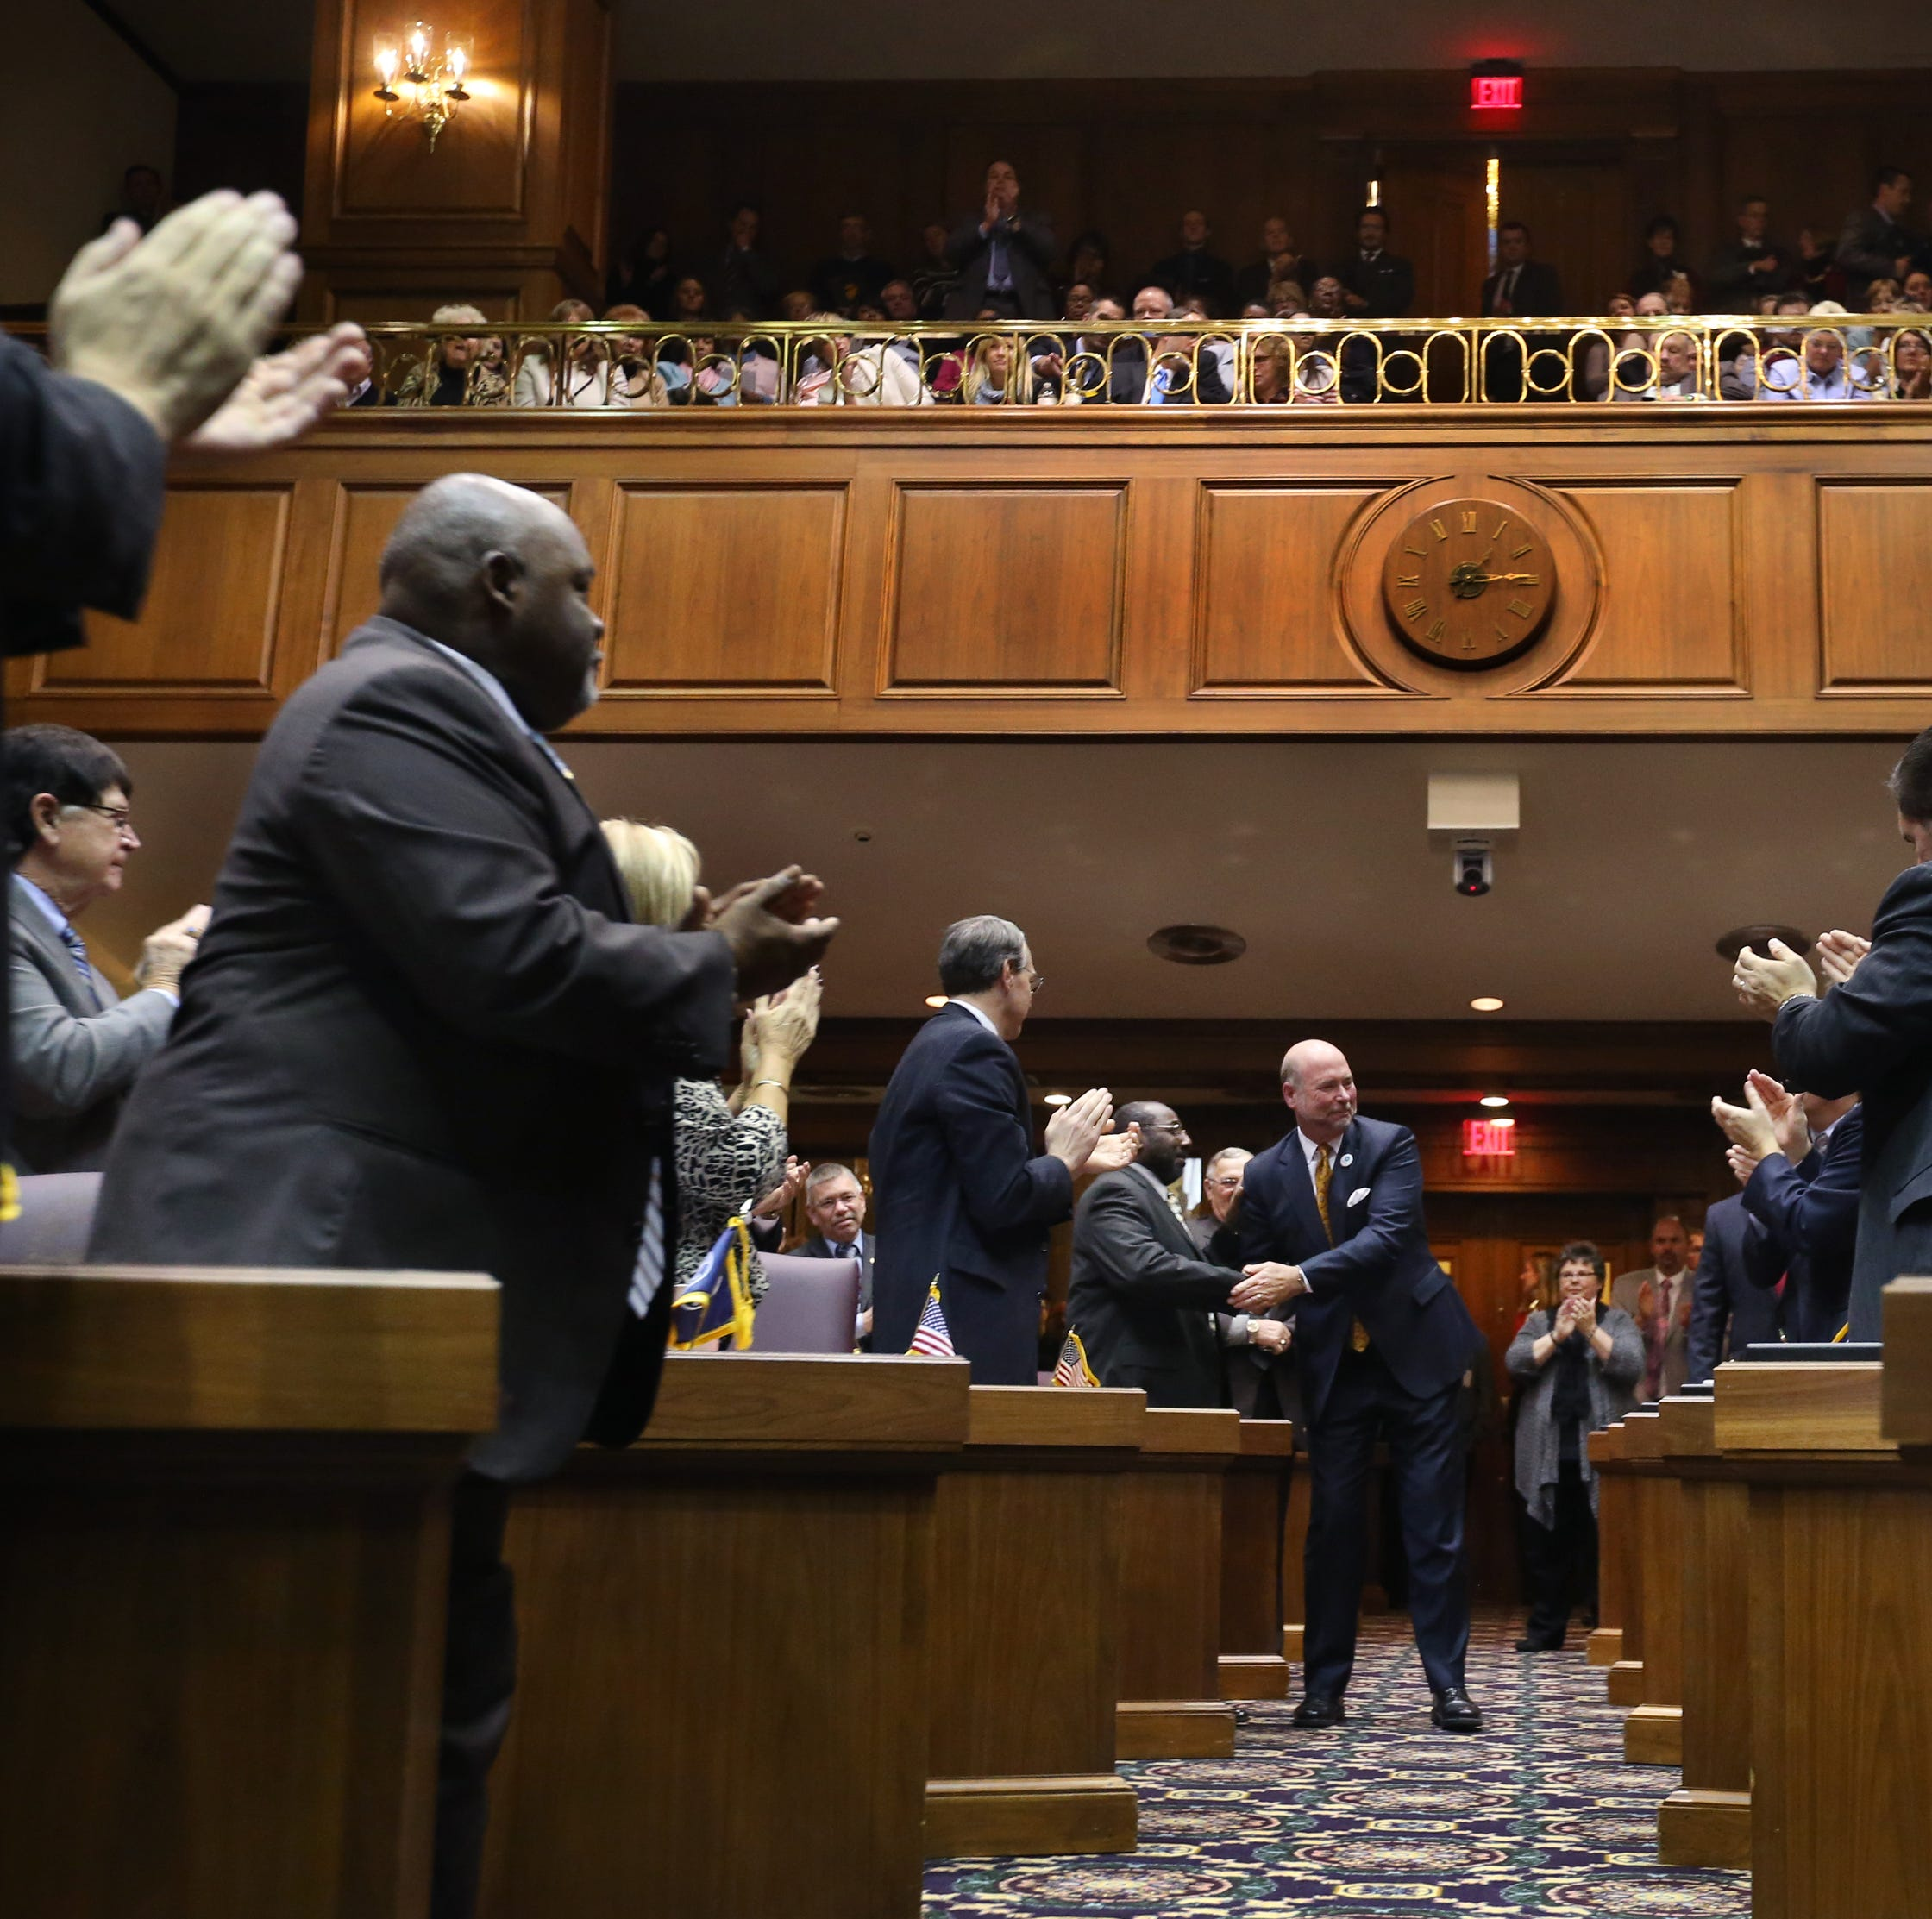 Speaker of the House Brian Bosma, R-Indianapolis, heads up the center aisle of the House shaking hands shakes hands at the beginning of Organization Day for the 119th Indiana General Assembly at the Indiana Statehouse in Indianapolis on Tuesday, Nov. 18, 2014.